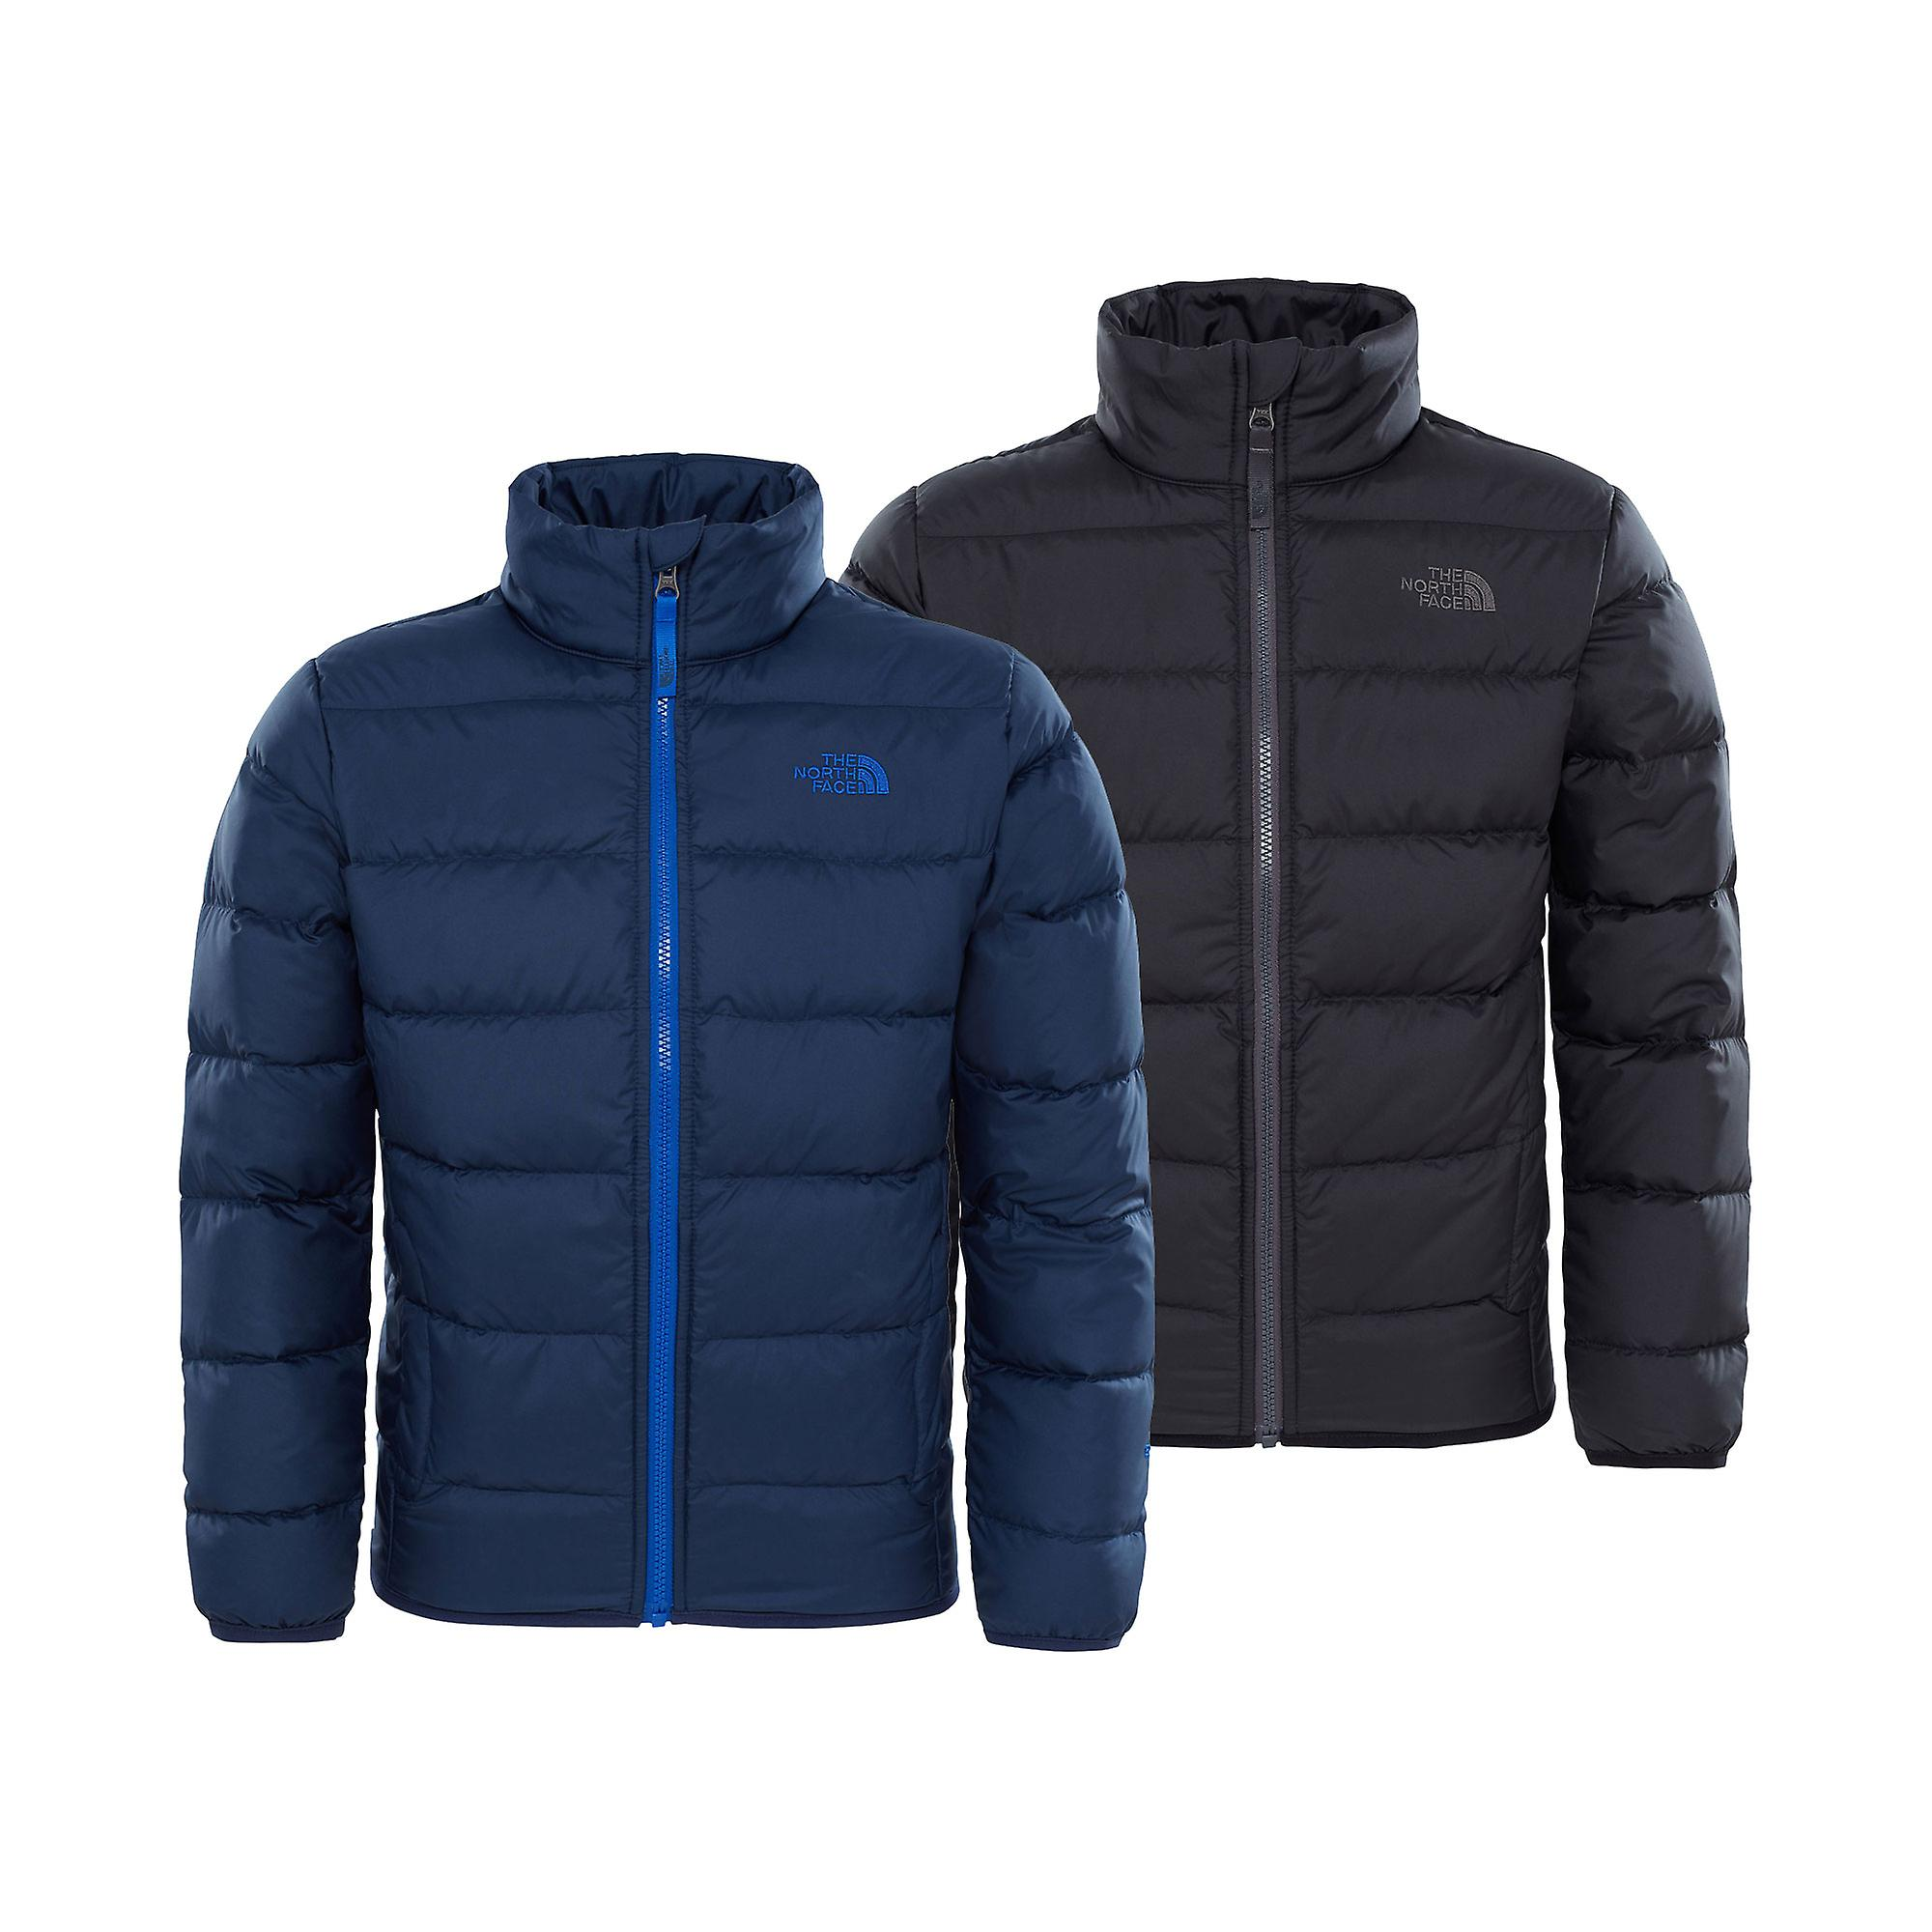 828affbfe The North Face Boys Andes Jacket